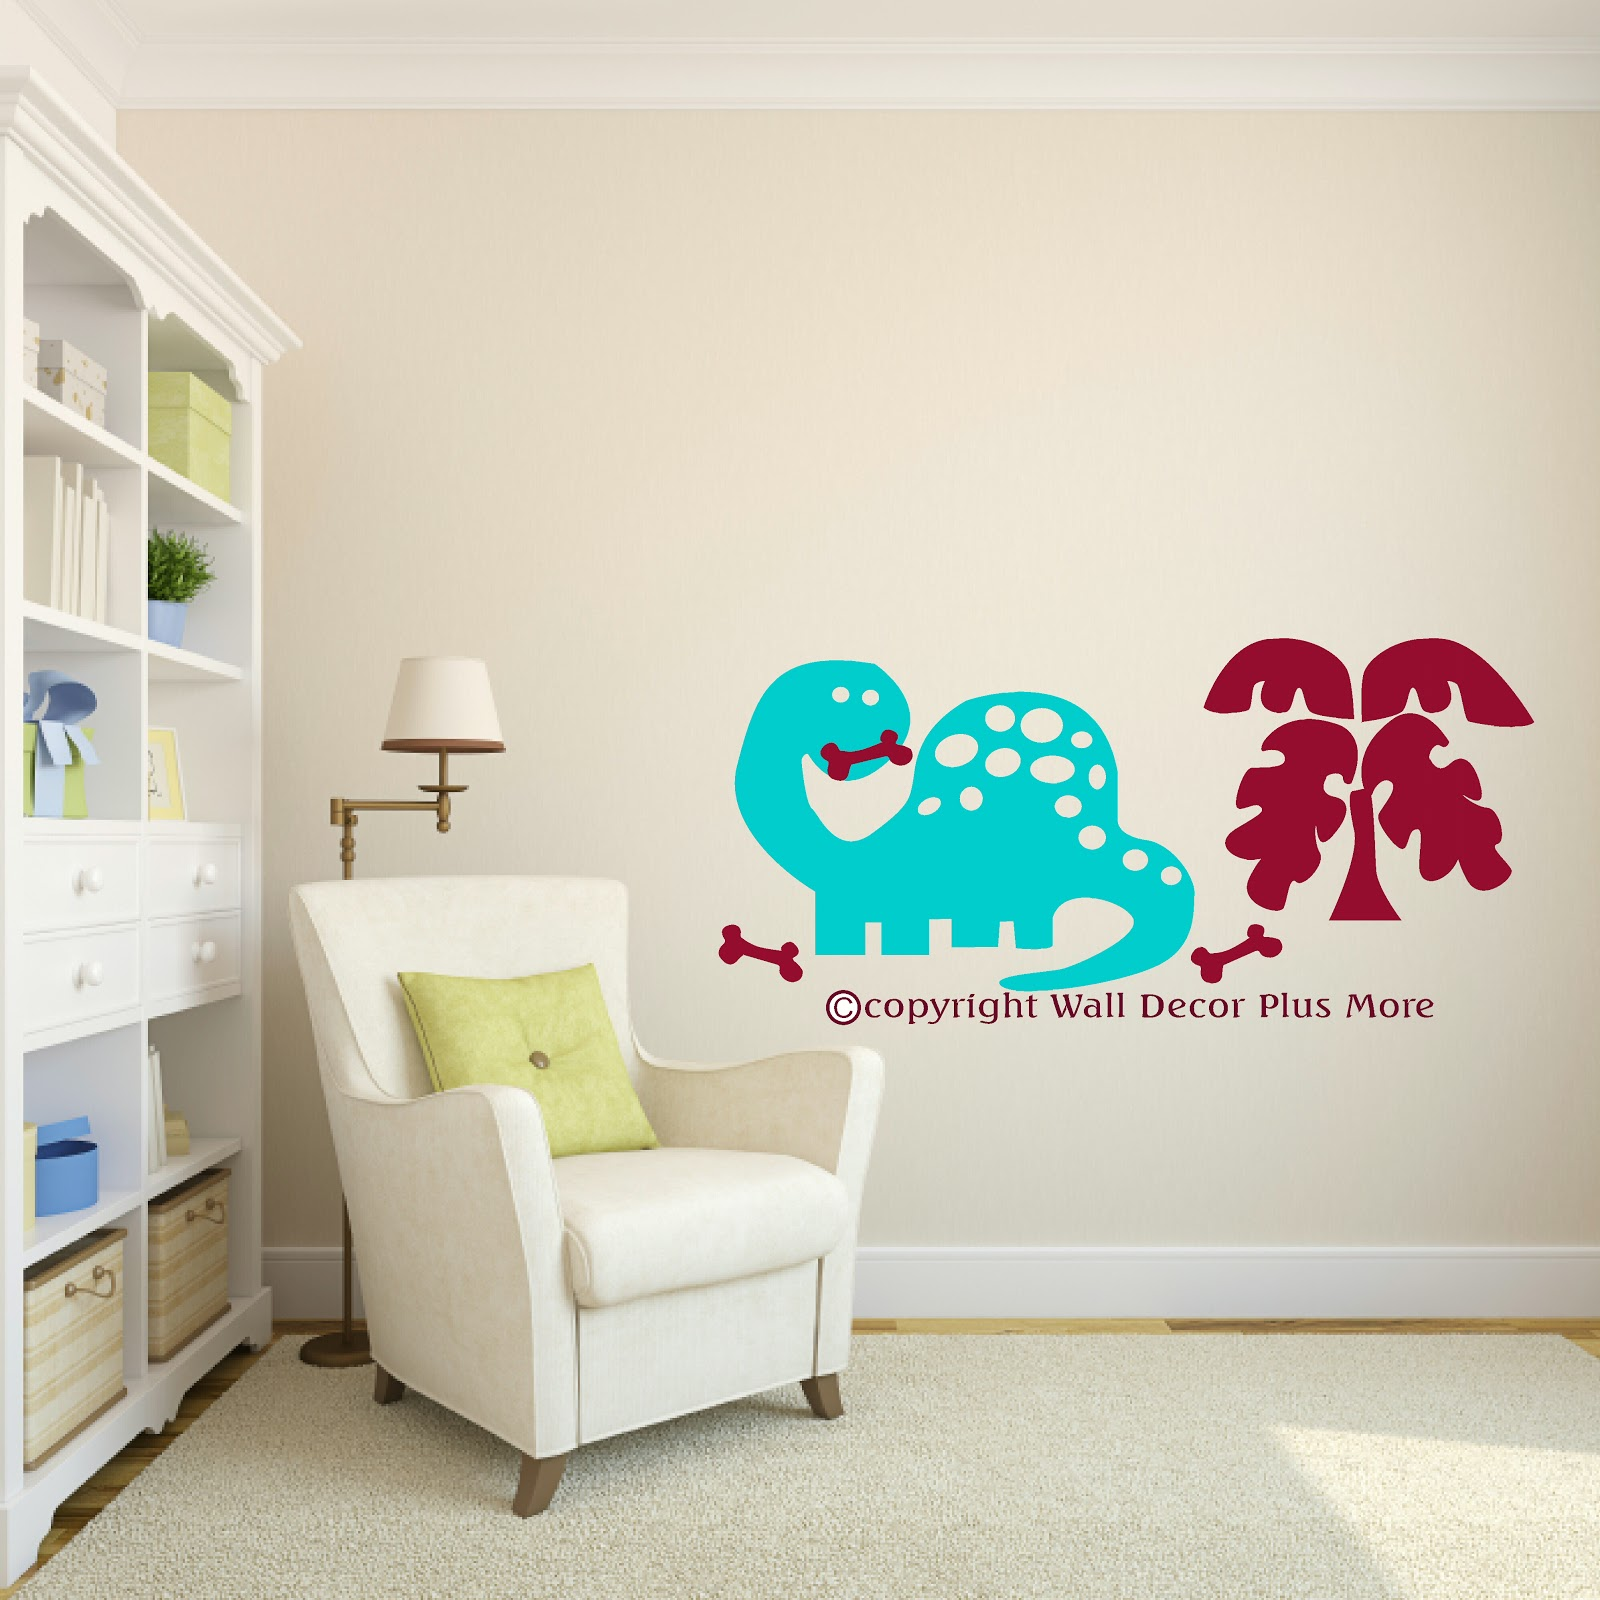 Wall Decor Plus More : Decorating with wall vinyl dinosaur stickers new